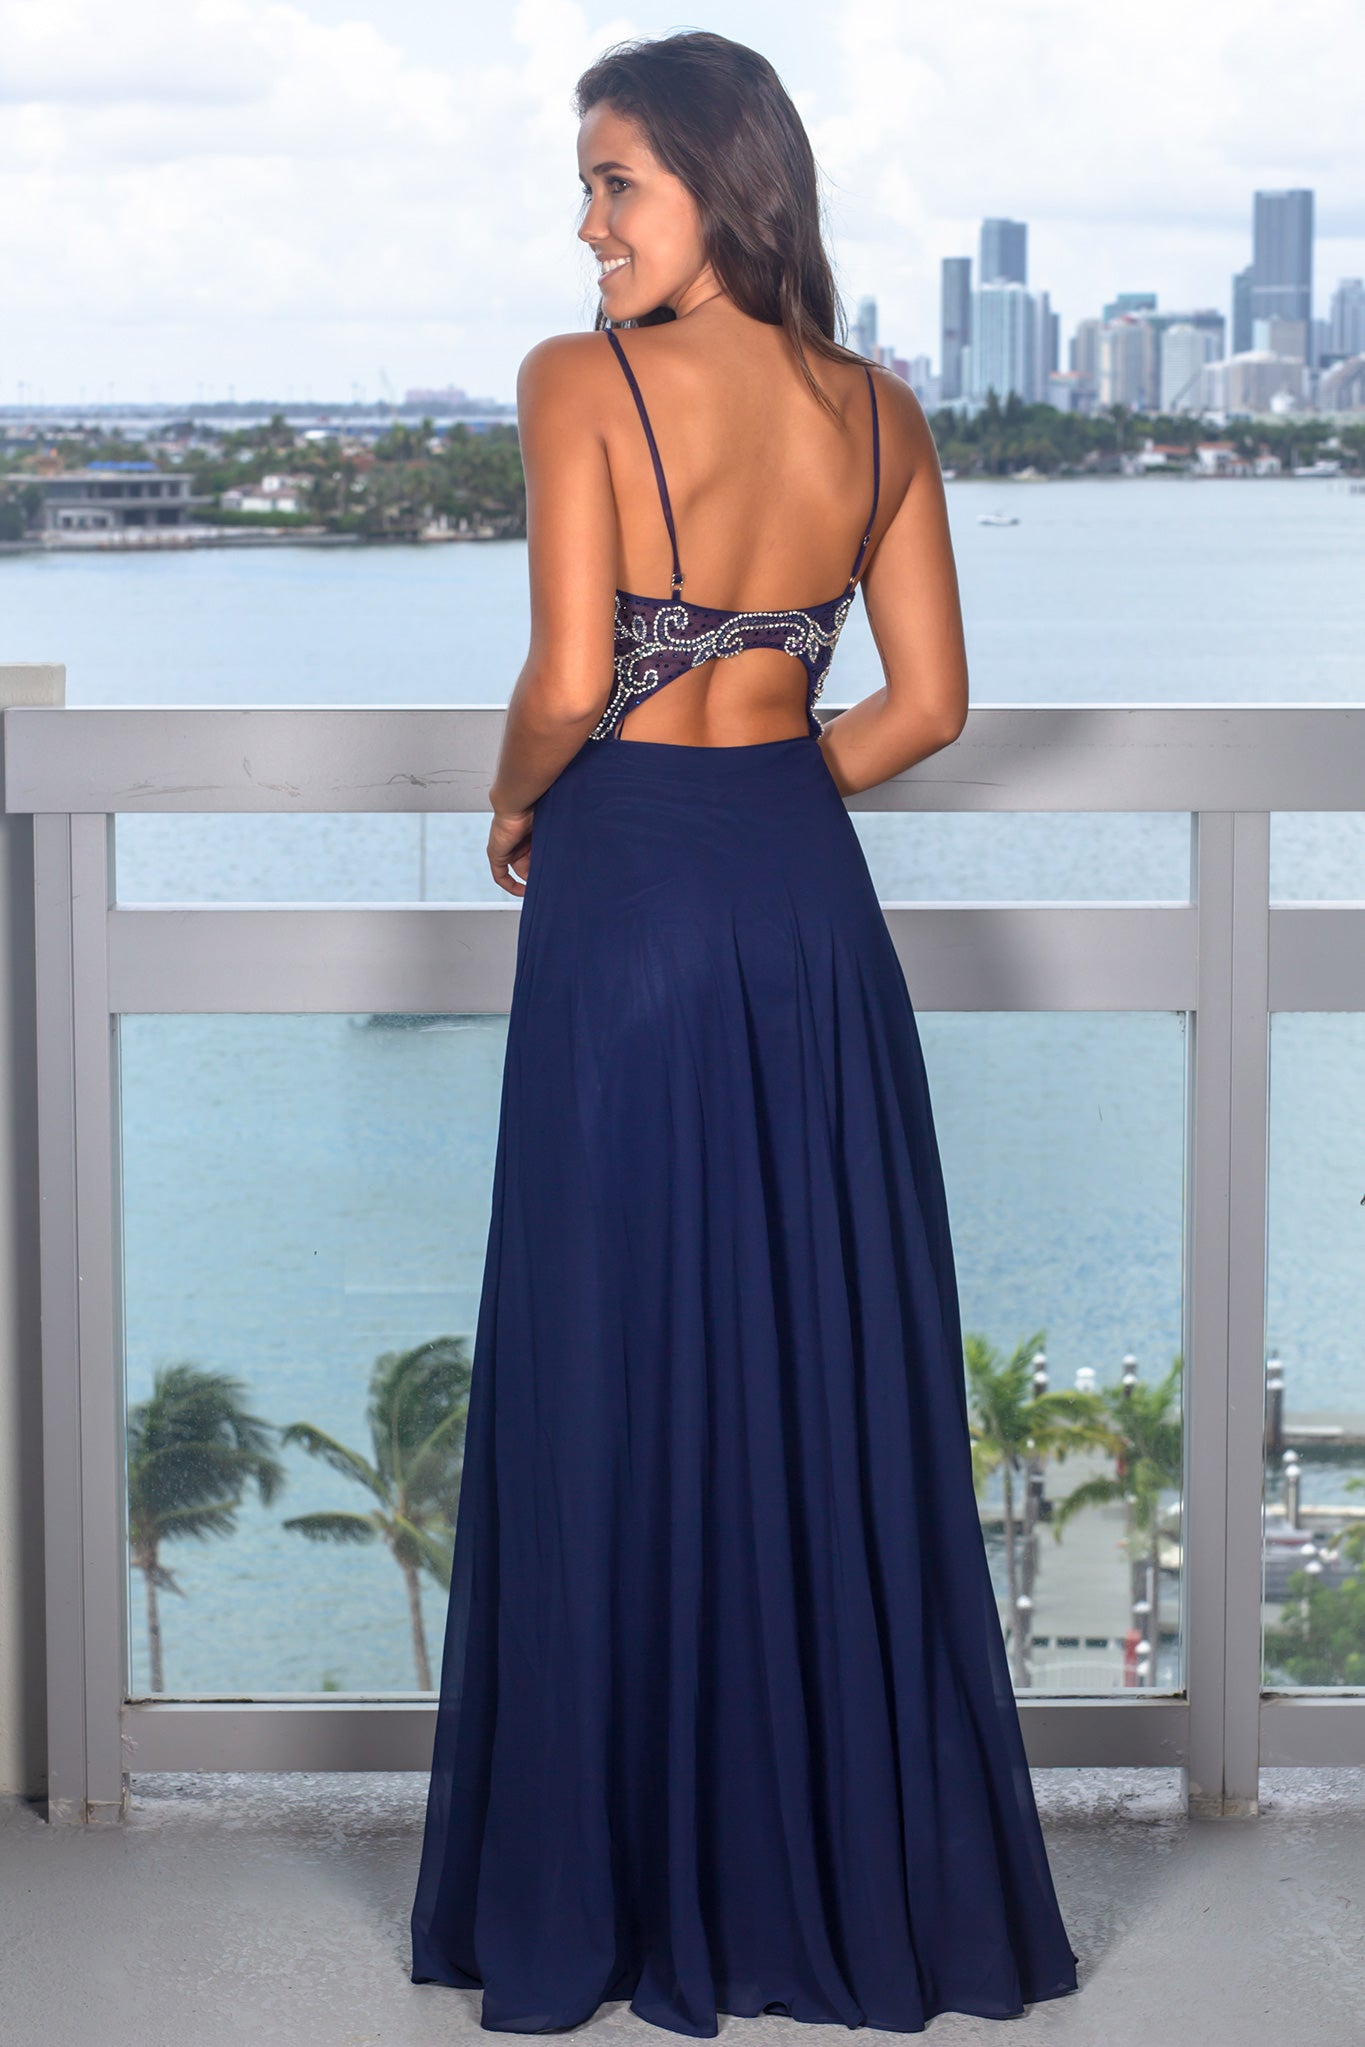 Blue Maxi Dress with Jeweled Top